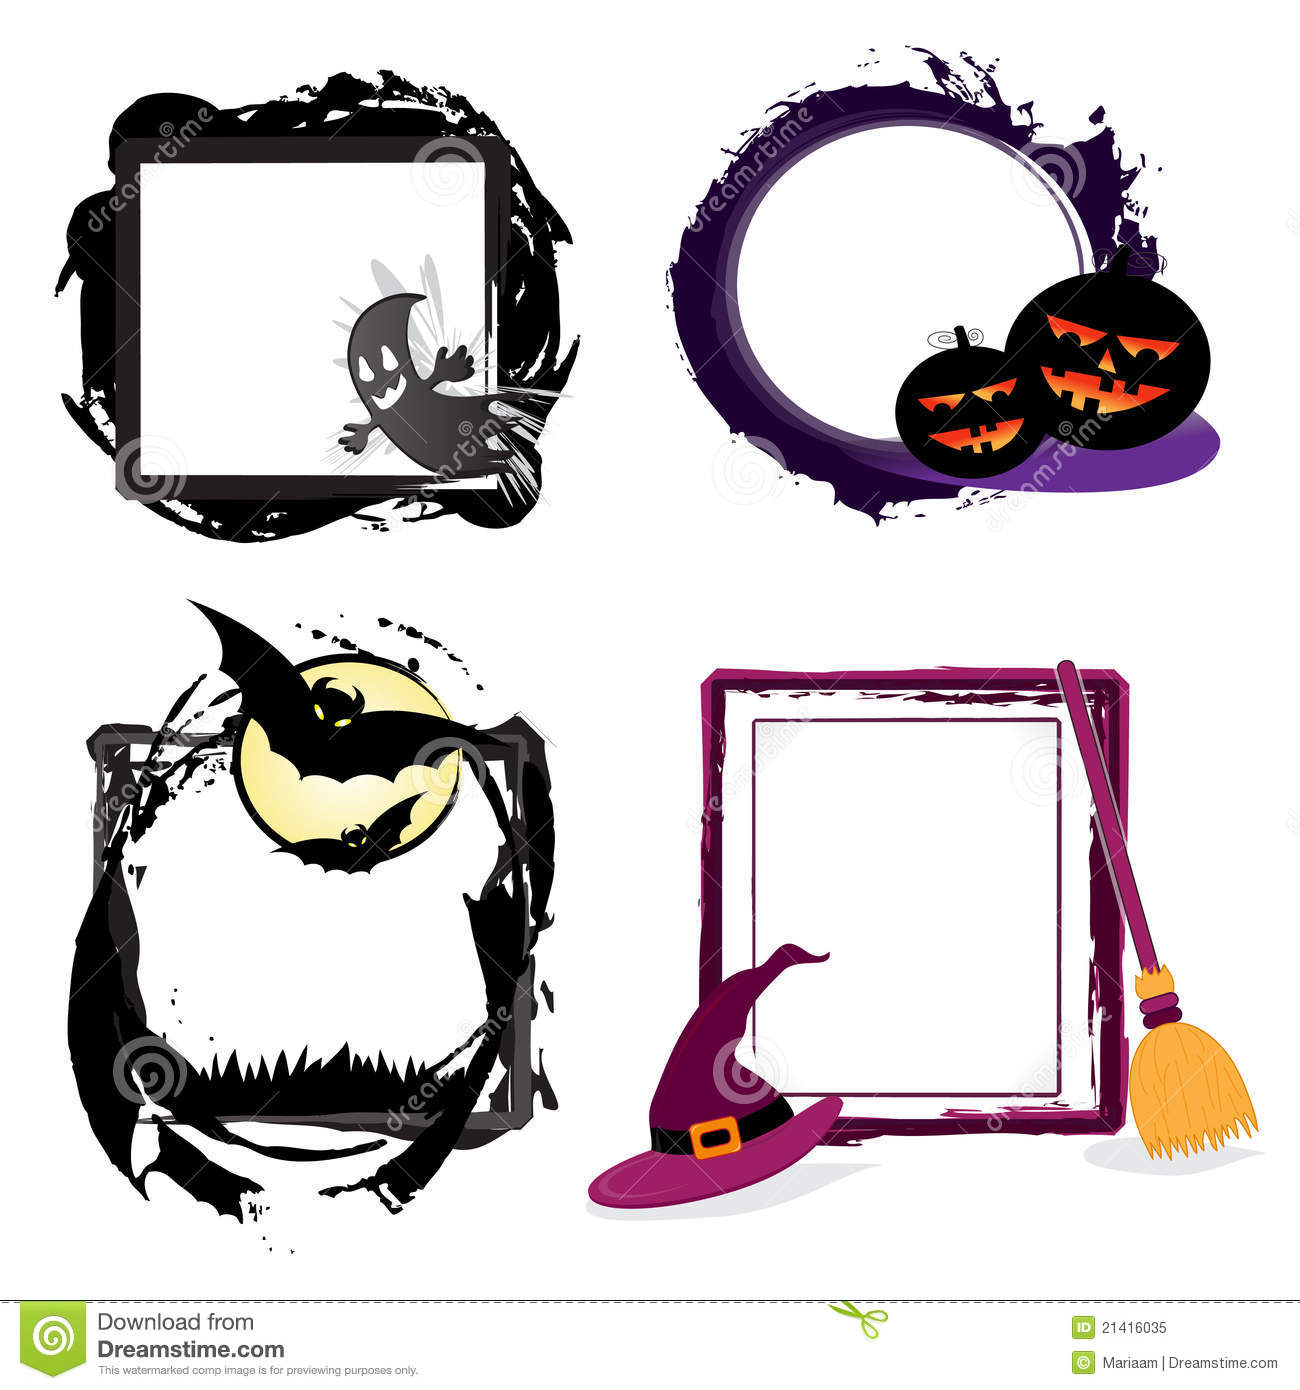 Halloween grunge frames stock illustration illustration of spooky halloween grunge frames jeuxipadfo Choice Image